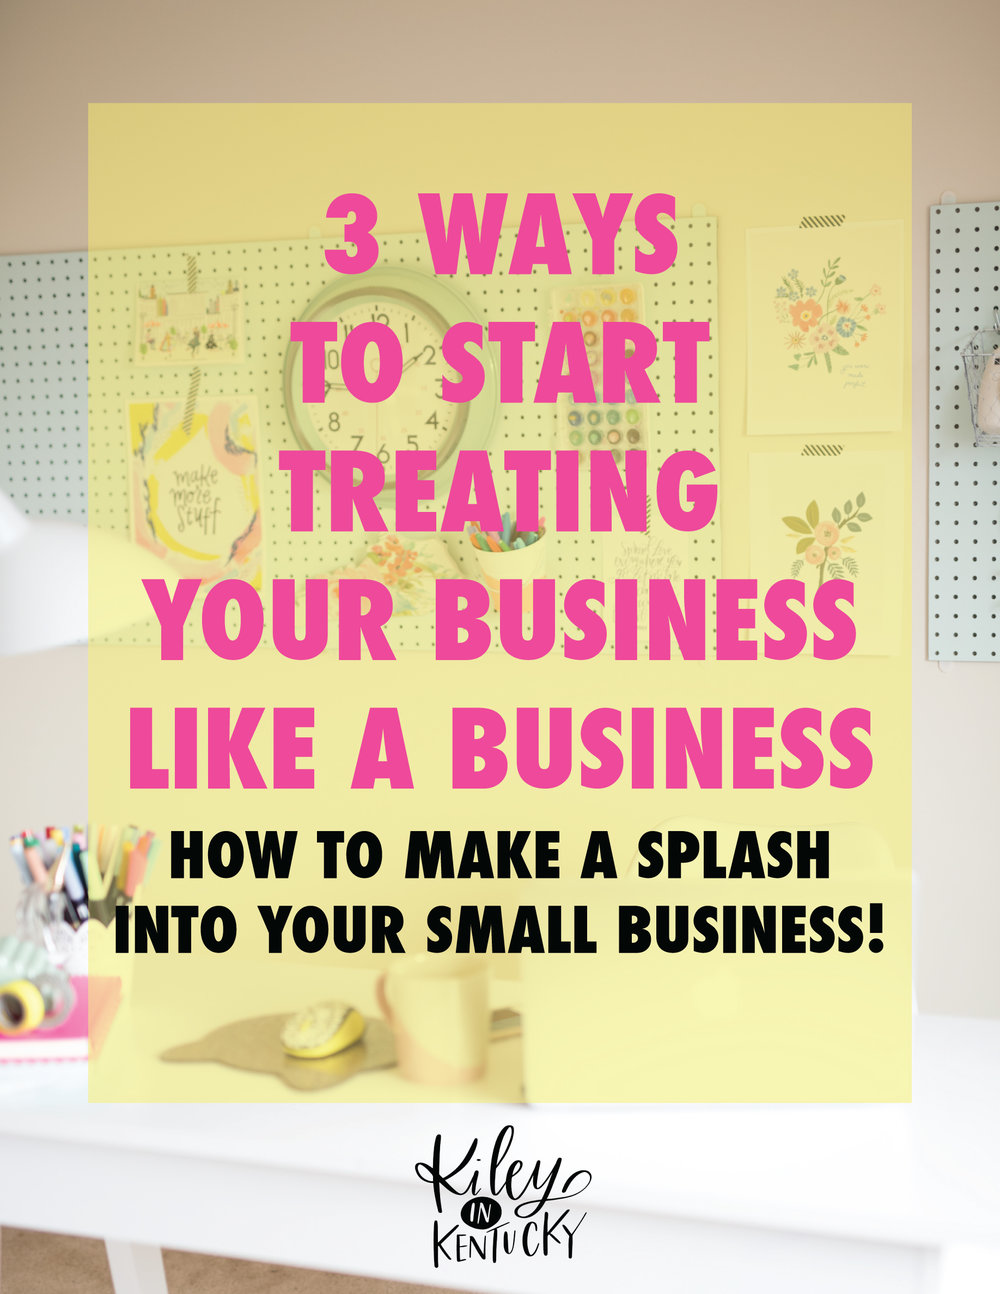 3 Ways to Start treating your business like a business: make a splash into your small business